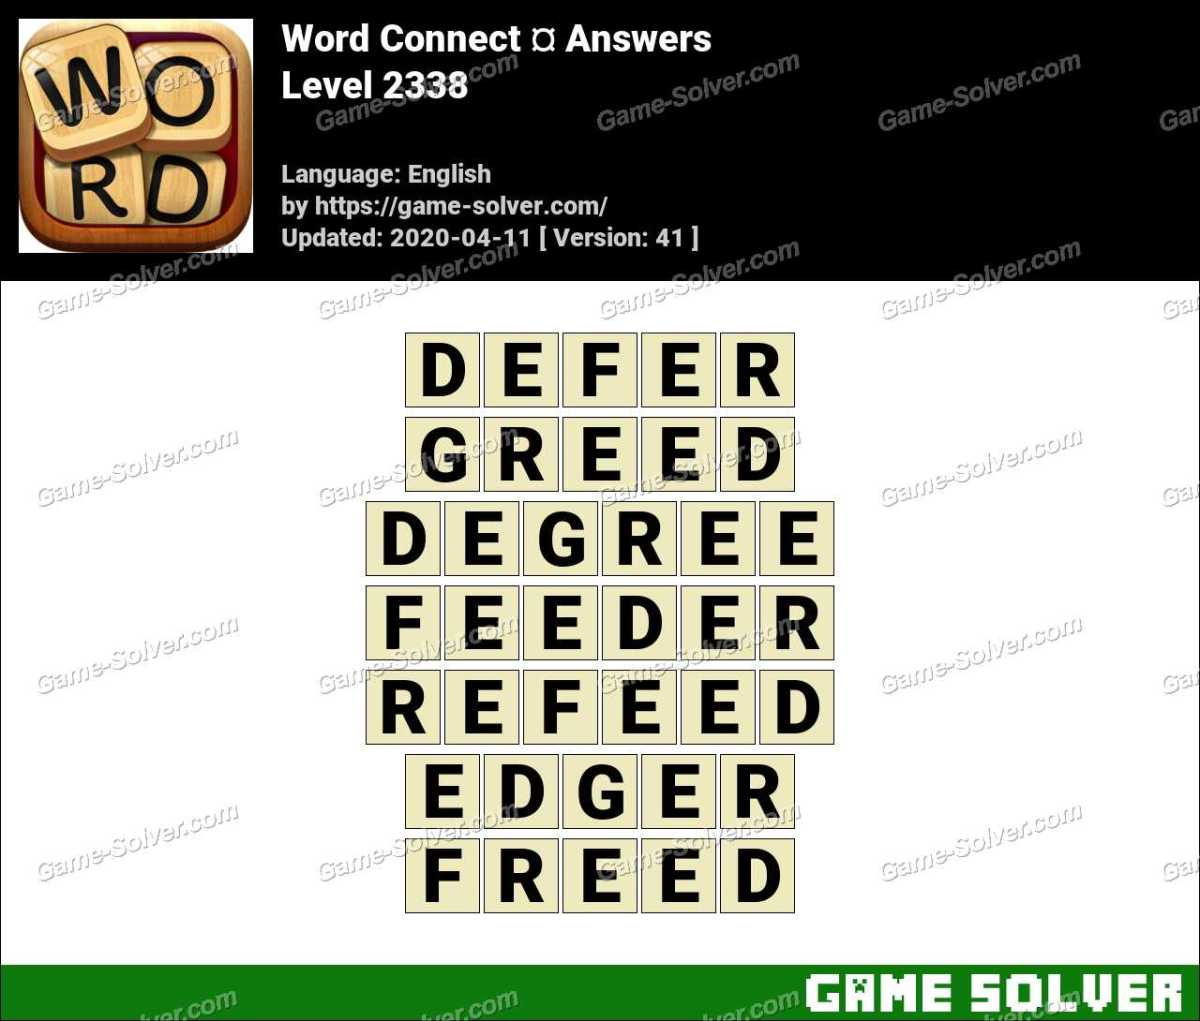 Word Connect Level 2338 Answers